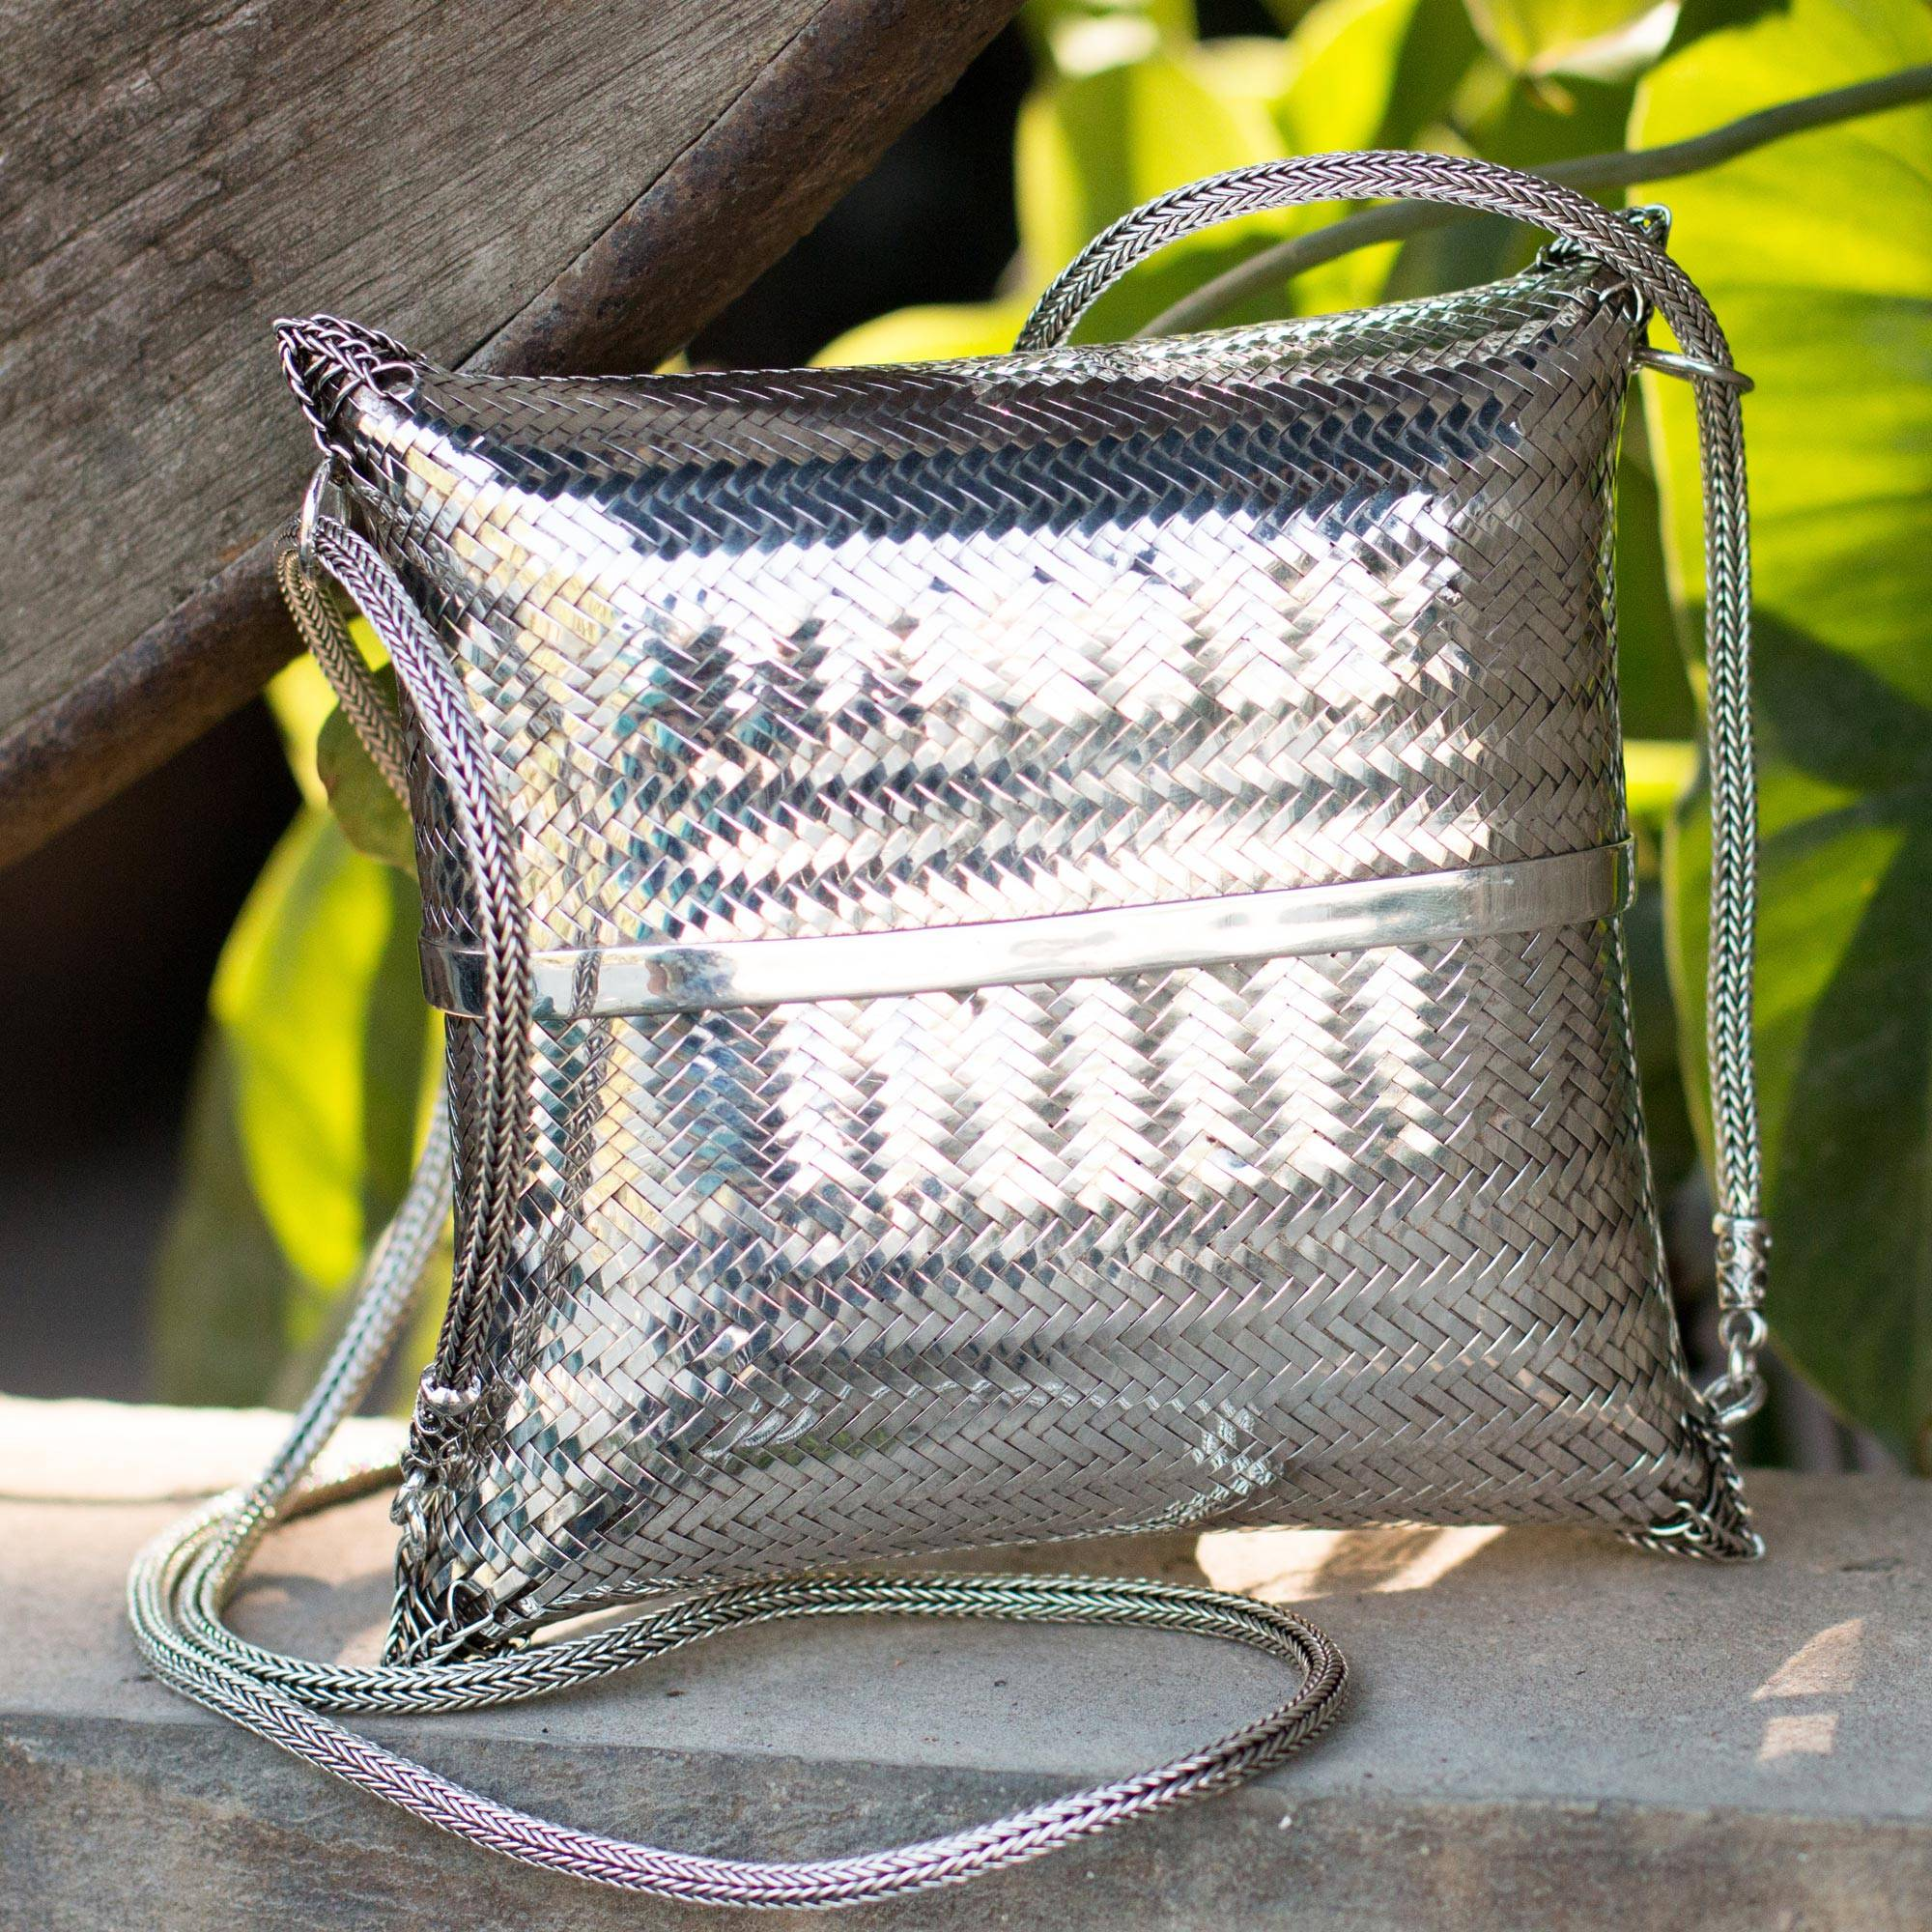 Thai Weavings Silver Plated Petite Woven Shoulder Bag Why Sterling Silver Jewelry Makes Me Happy